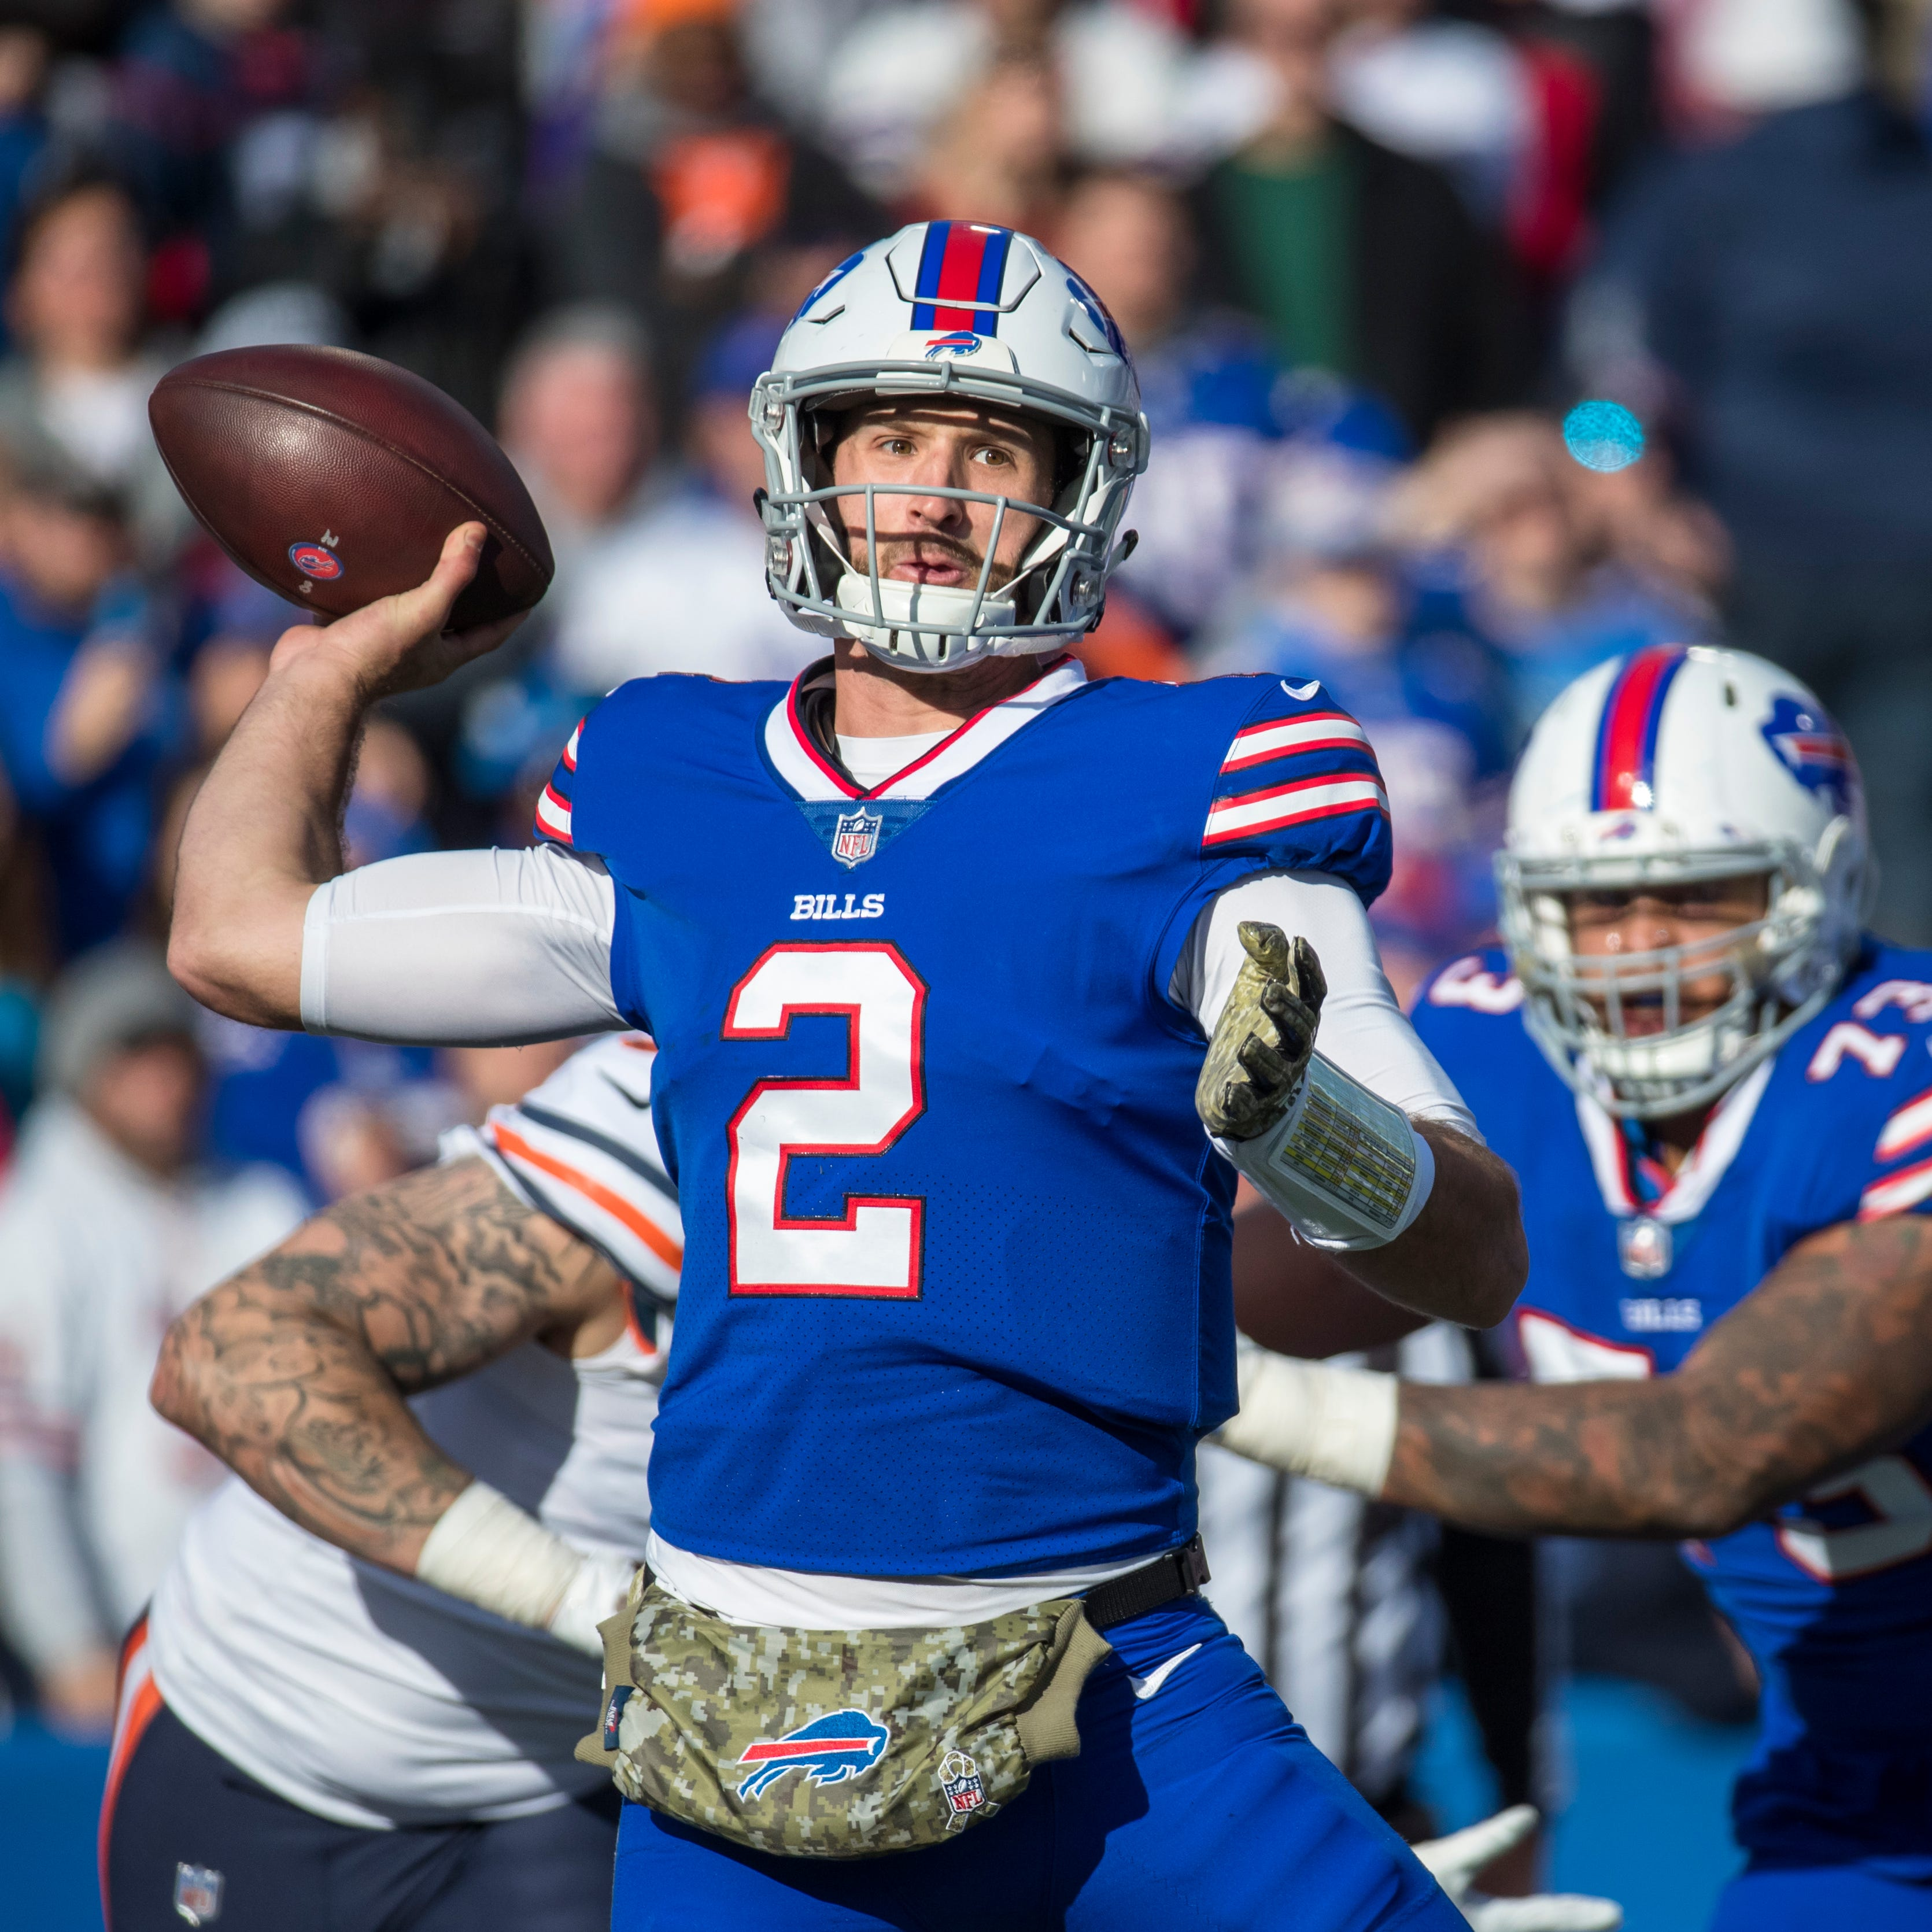 Leo Roth: We'll remember Nathan Peterman the person long after those interceptions